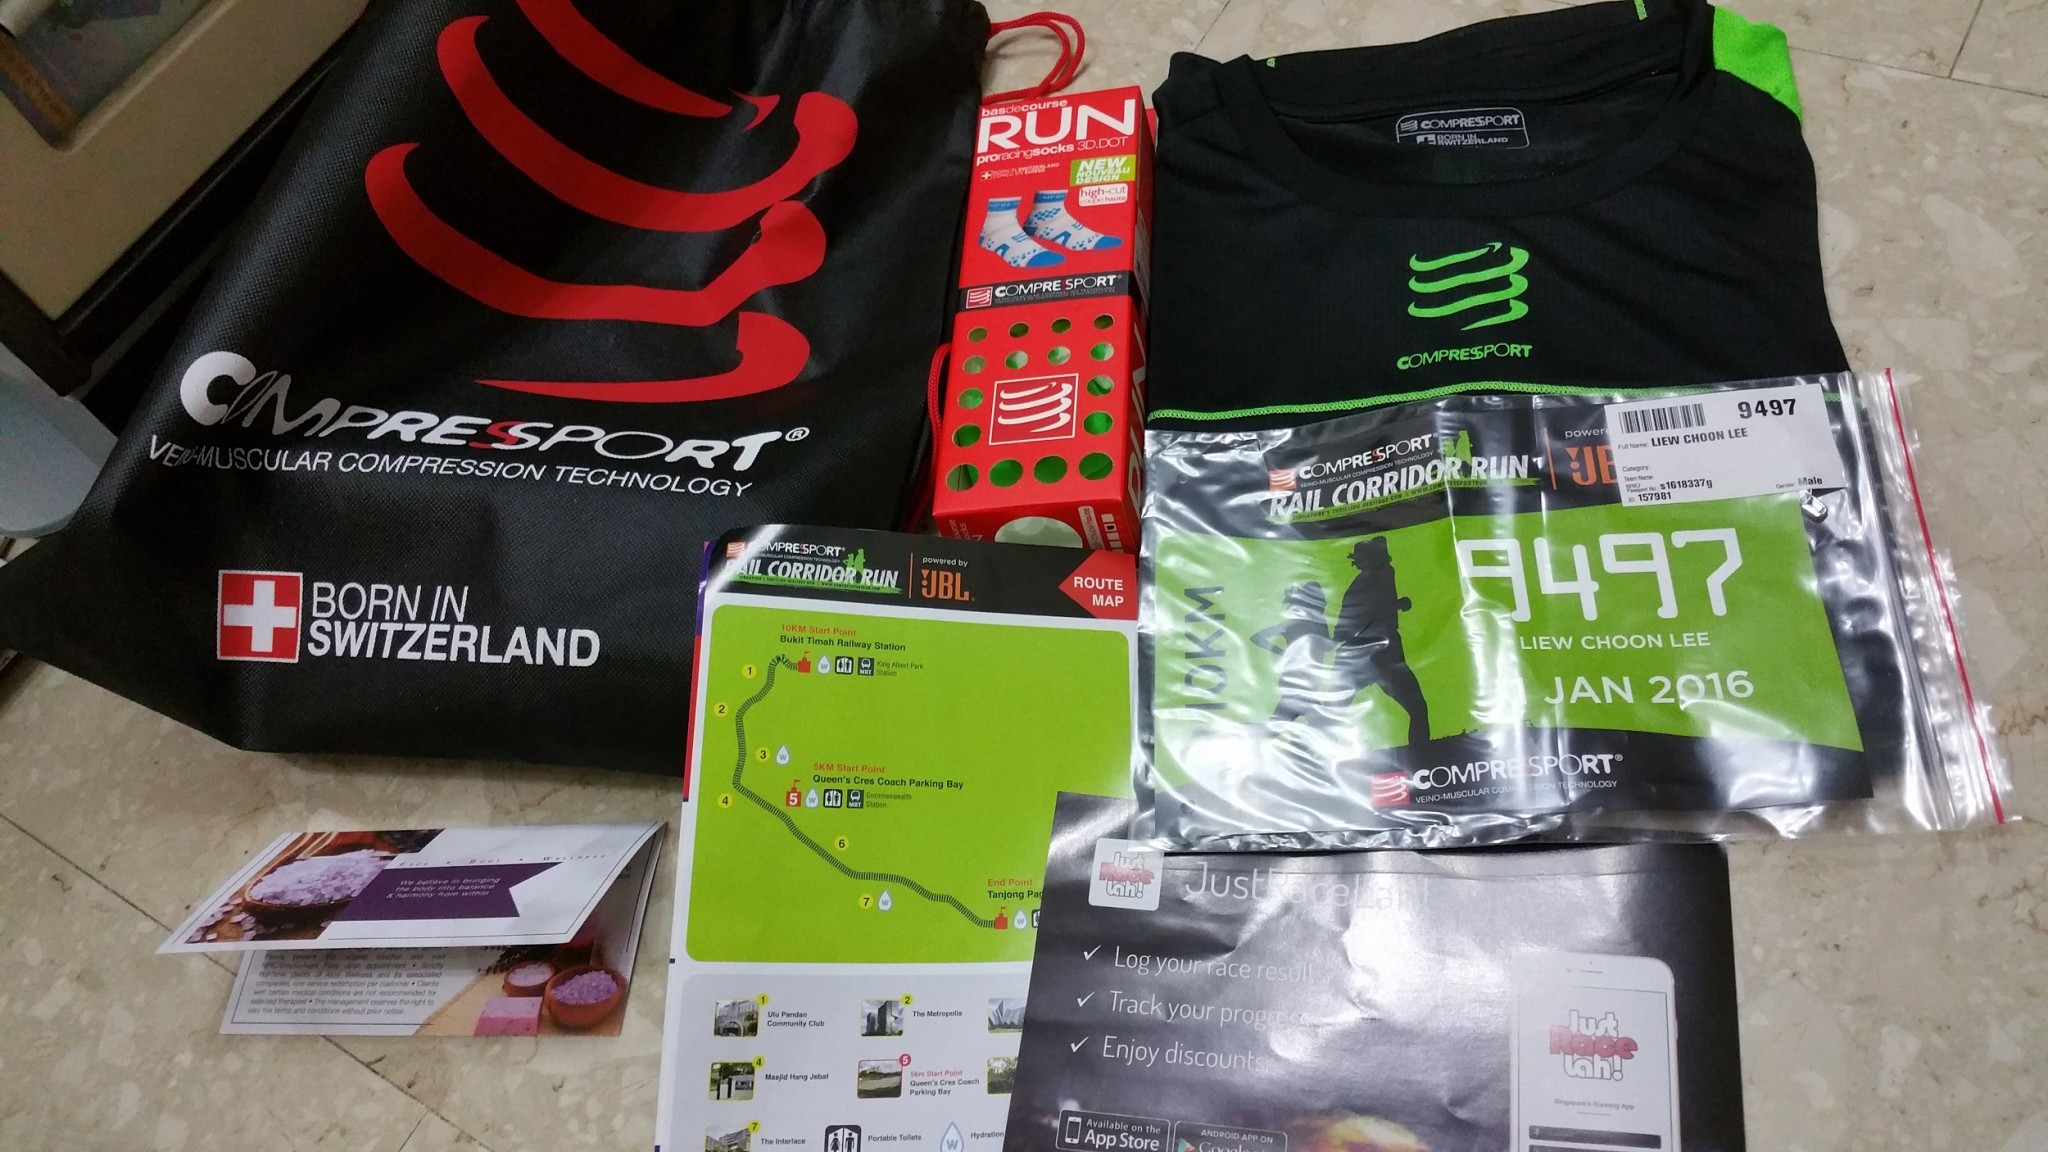 The Race Entry Pack